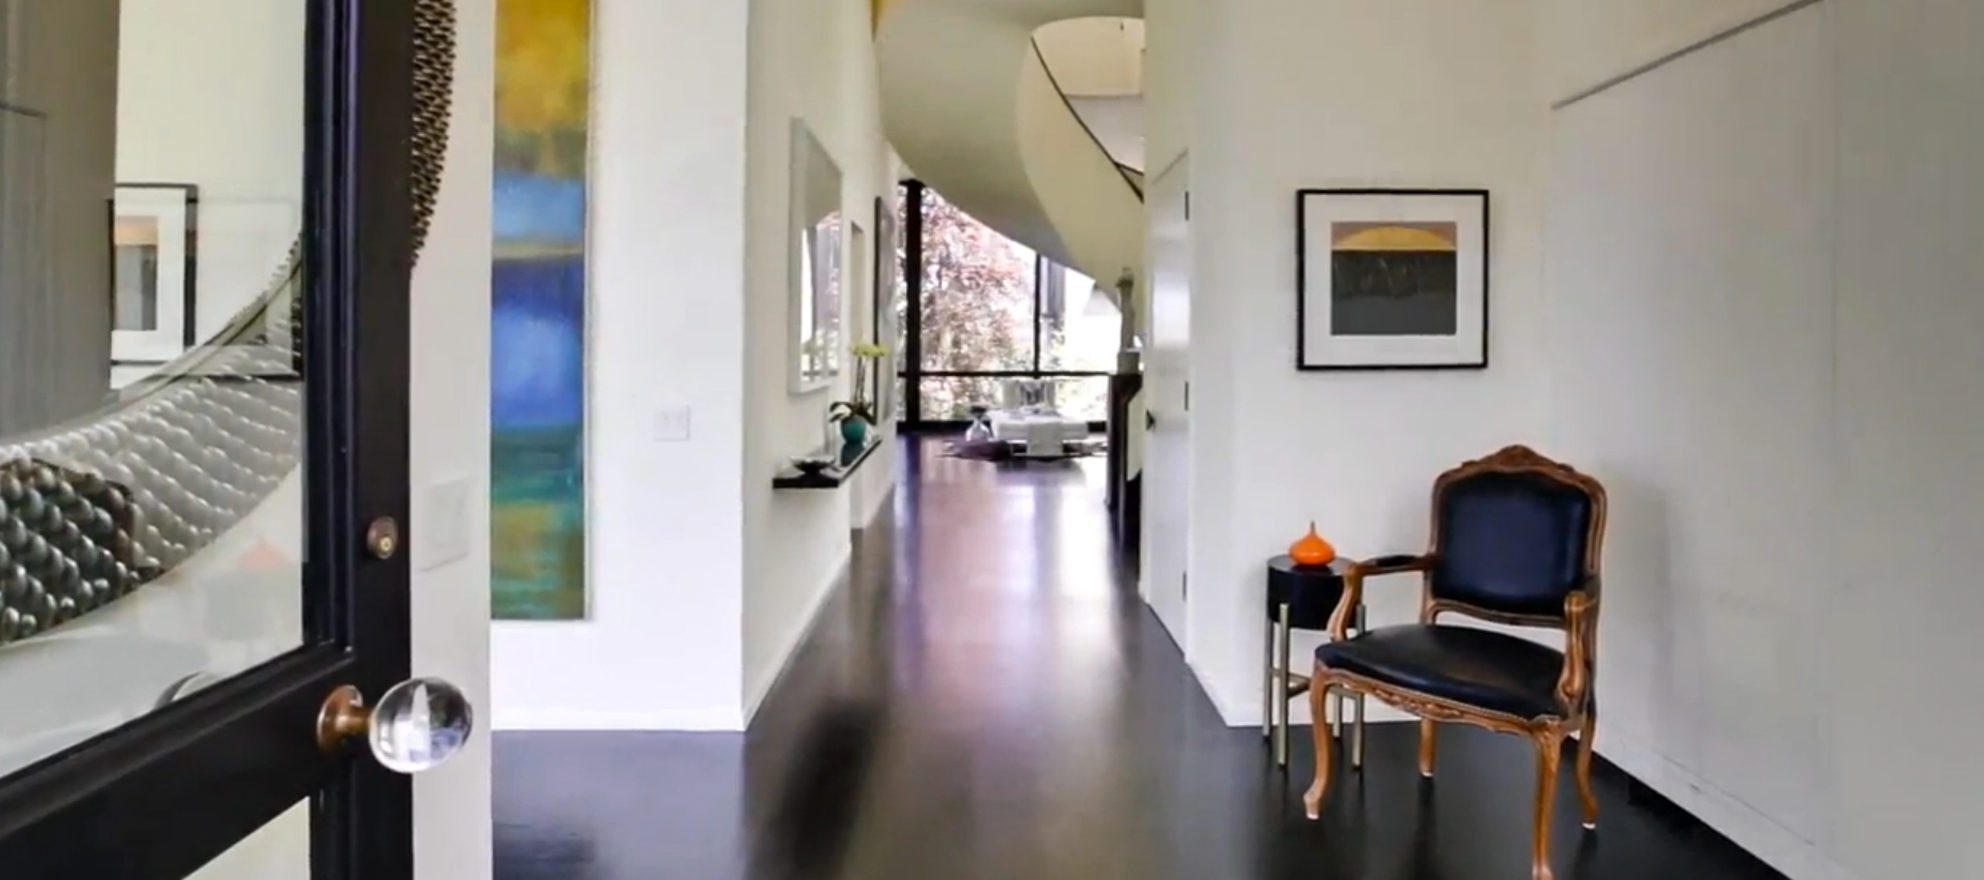 Listing video: Modern home designed with art in mind